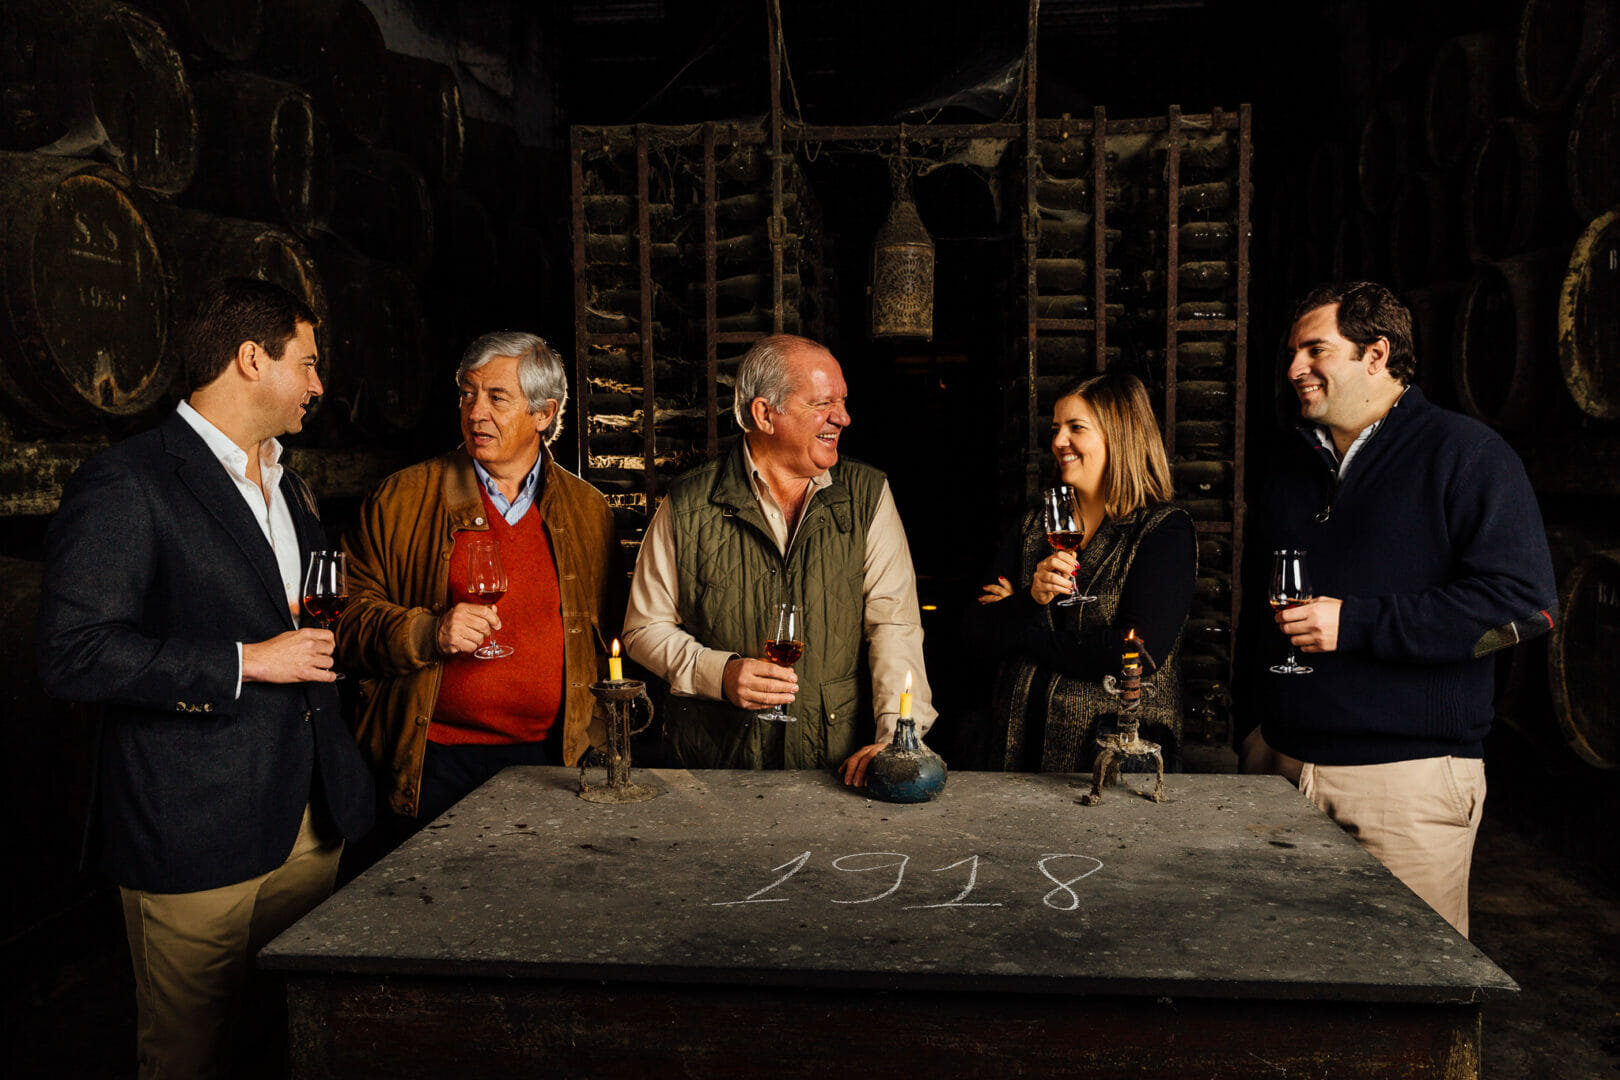 Soares Franco family: generations behind the winemaking traditions of José Maria da Fonseca brands